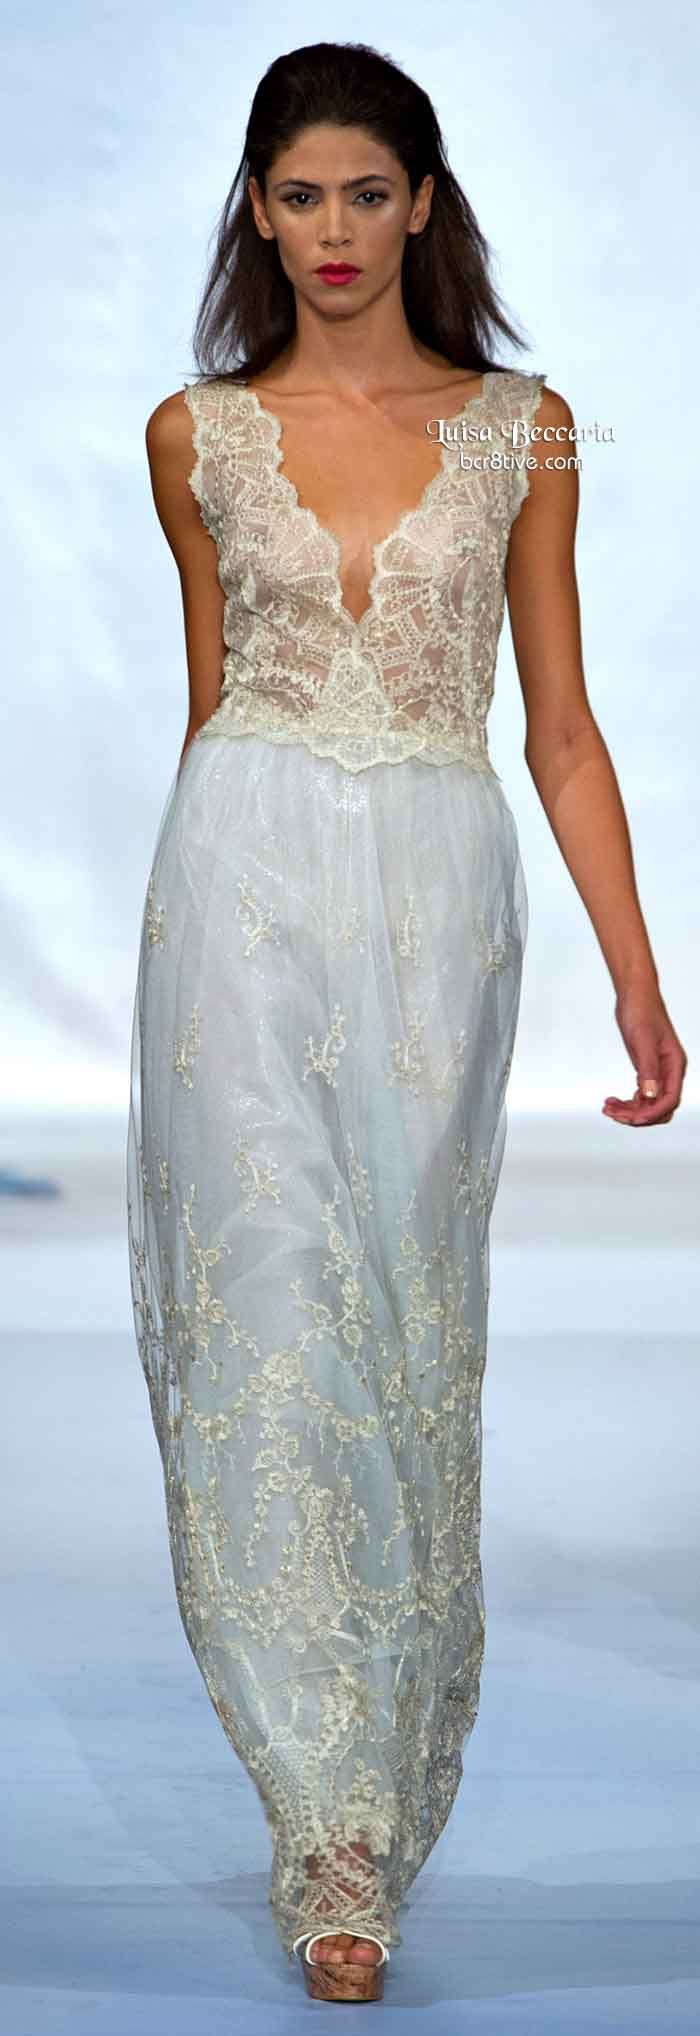 Luisa Beccaria Spring 2014...I see pants. Wow, love the details & fabric. Ask your seamstress for suggestions for that bridal look.